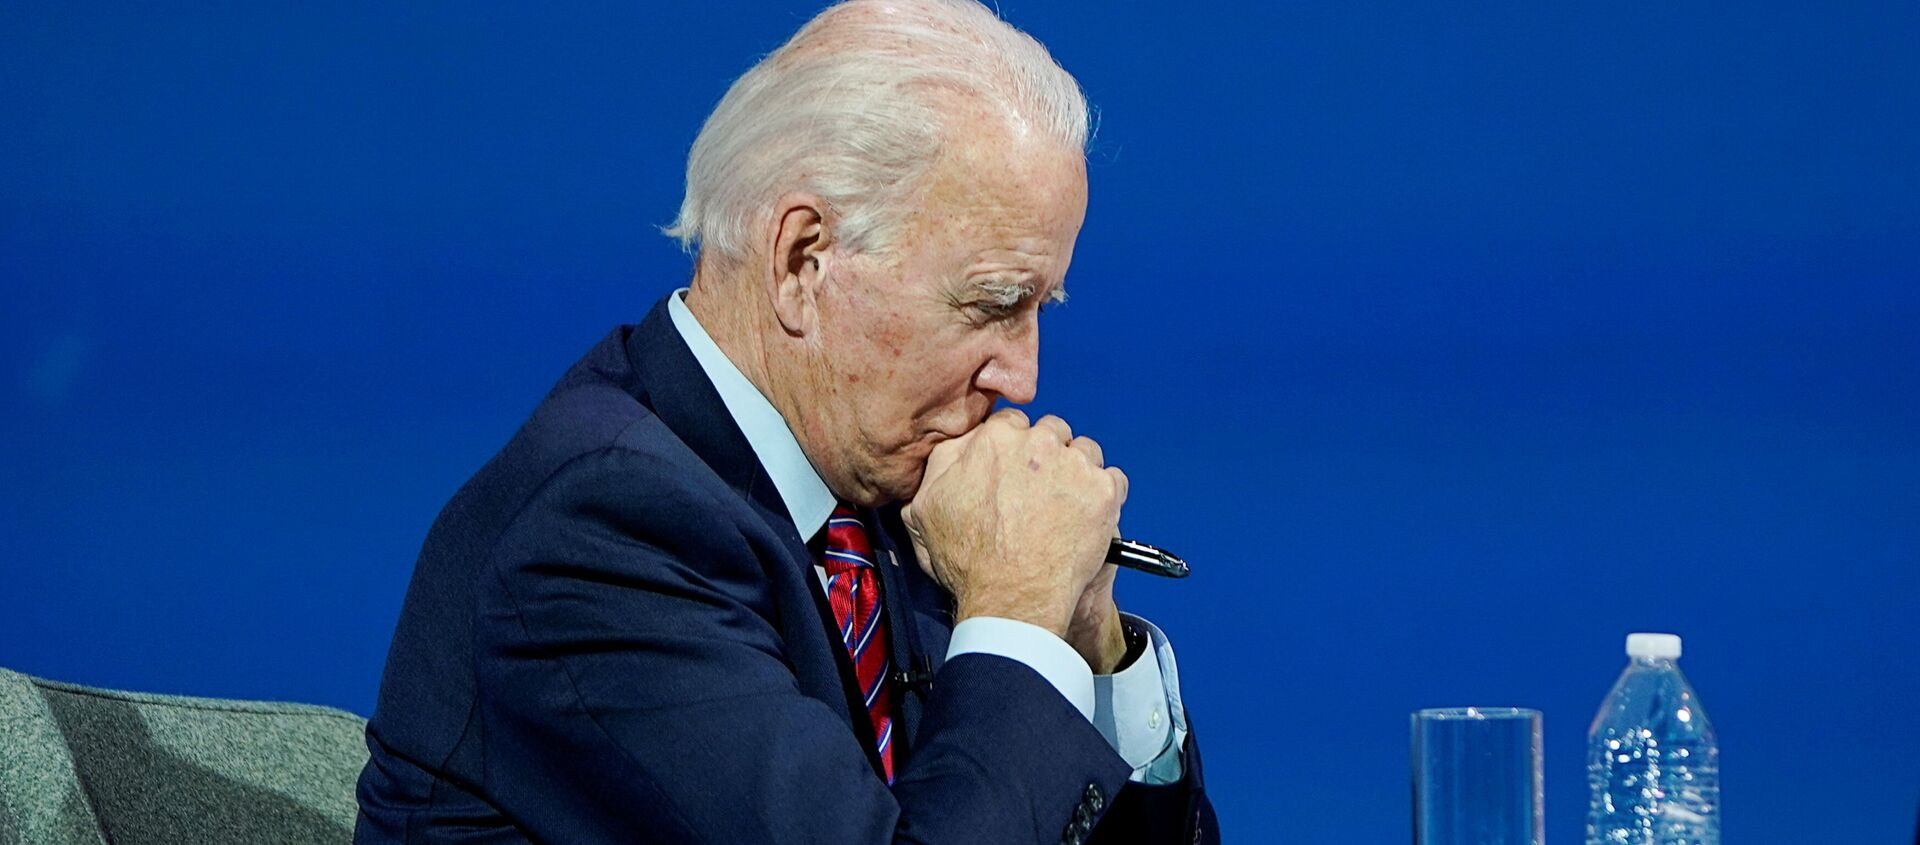 U.S. President-elect Joe Biden listens as he holds a videoconference meeting with members of the U.S Conference of Mayors at his transition headquarters in Wilmington, Delaware, U.S., November 23, 2020. REUTERS/Joshua Roberts - Sputnik 日本, 1920, 30.11.2020